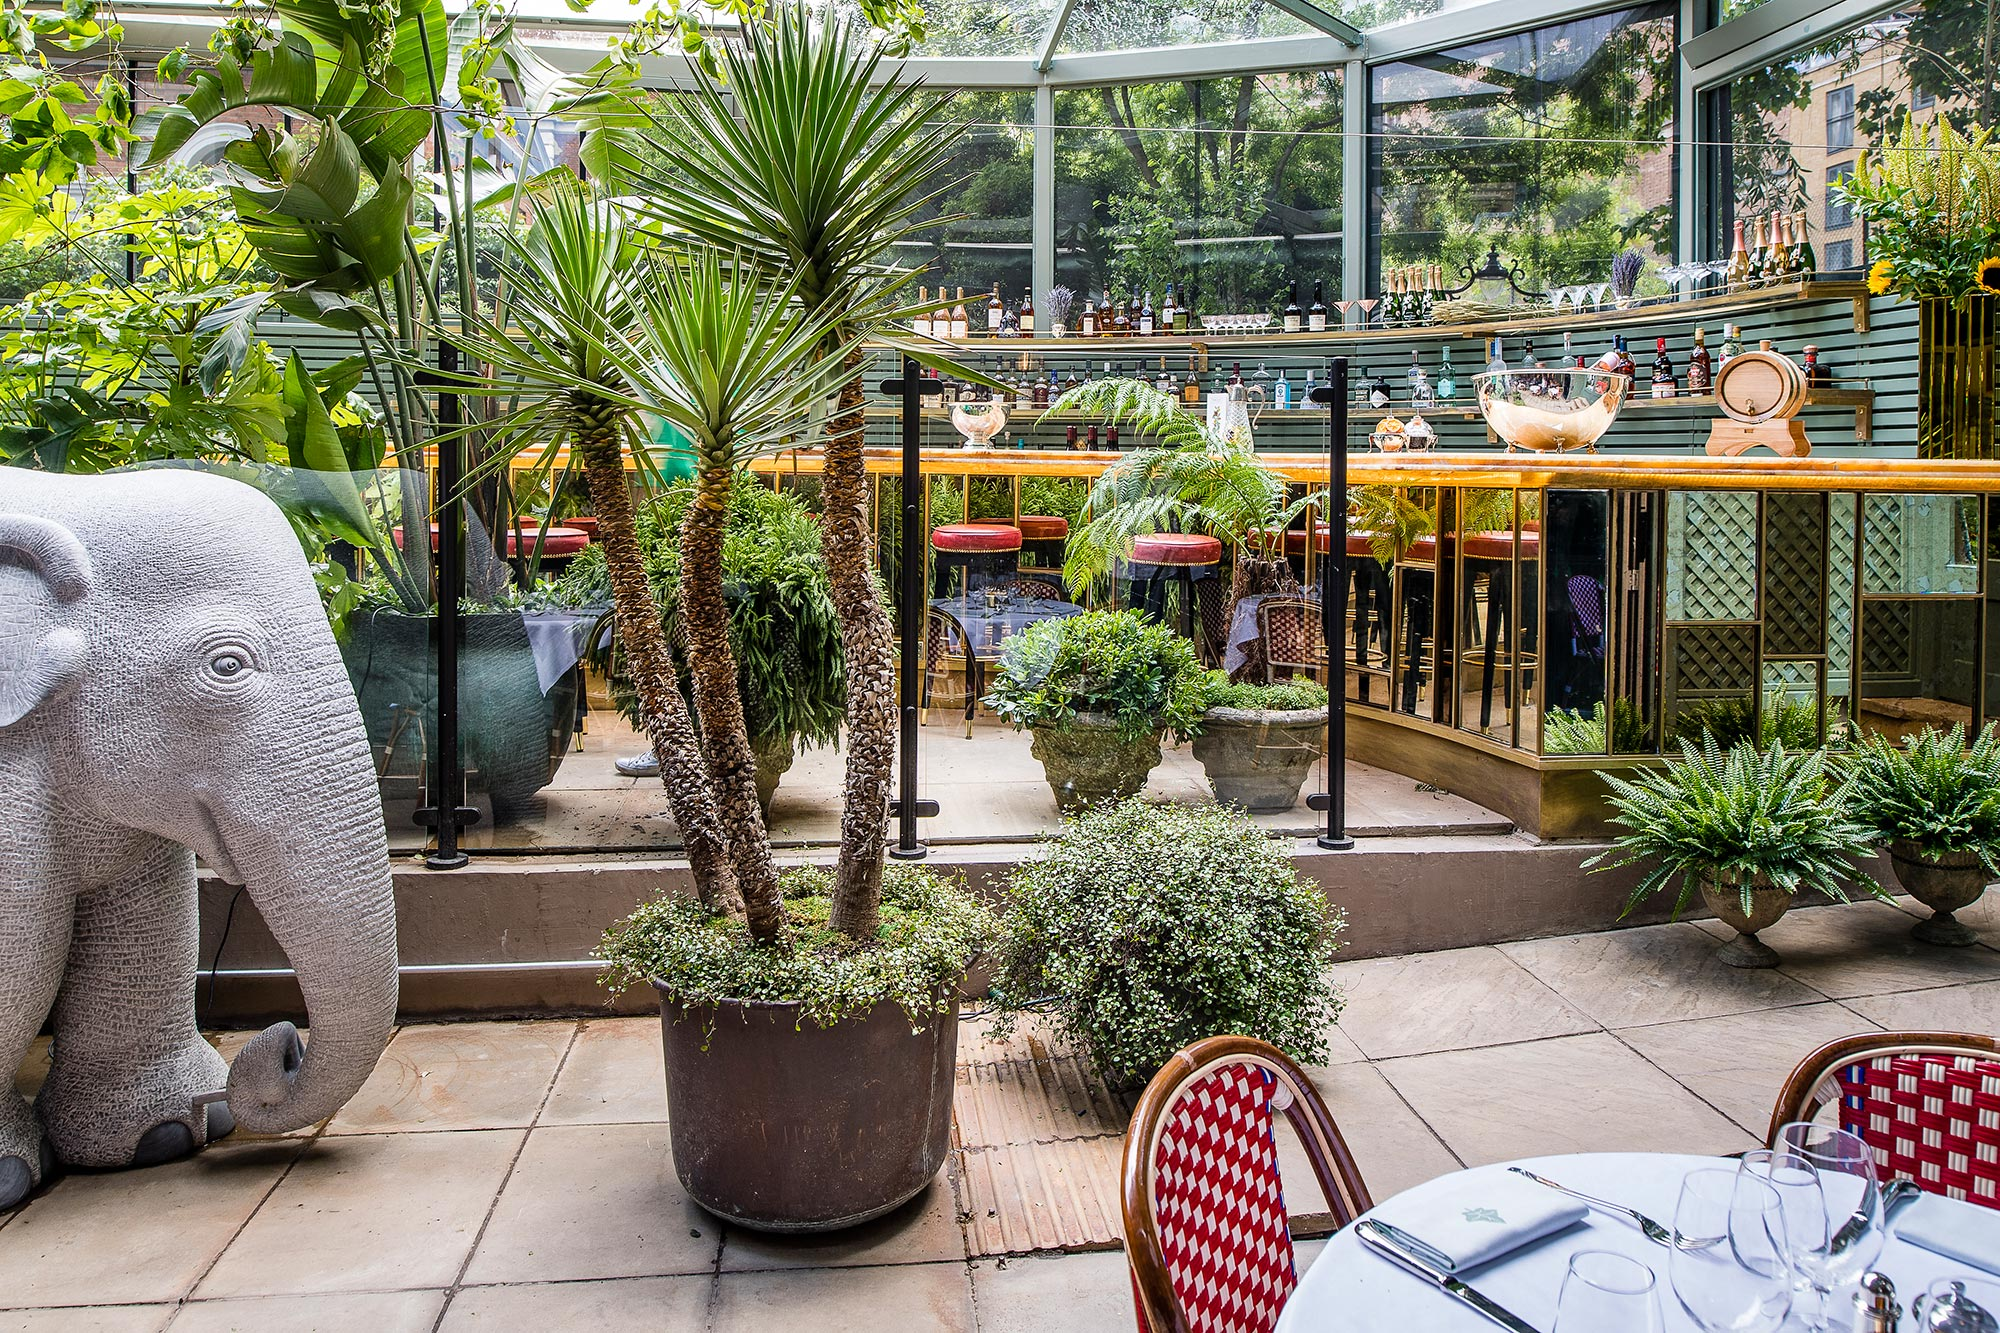 Restaurant Image Gallery The Ivy City Garden London